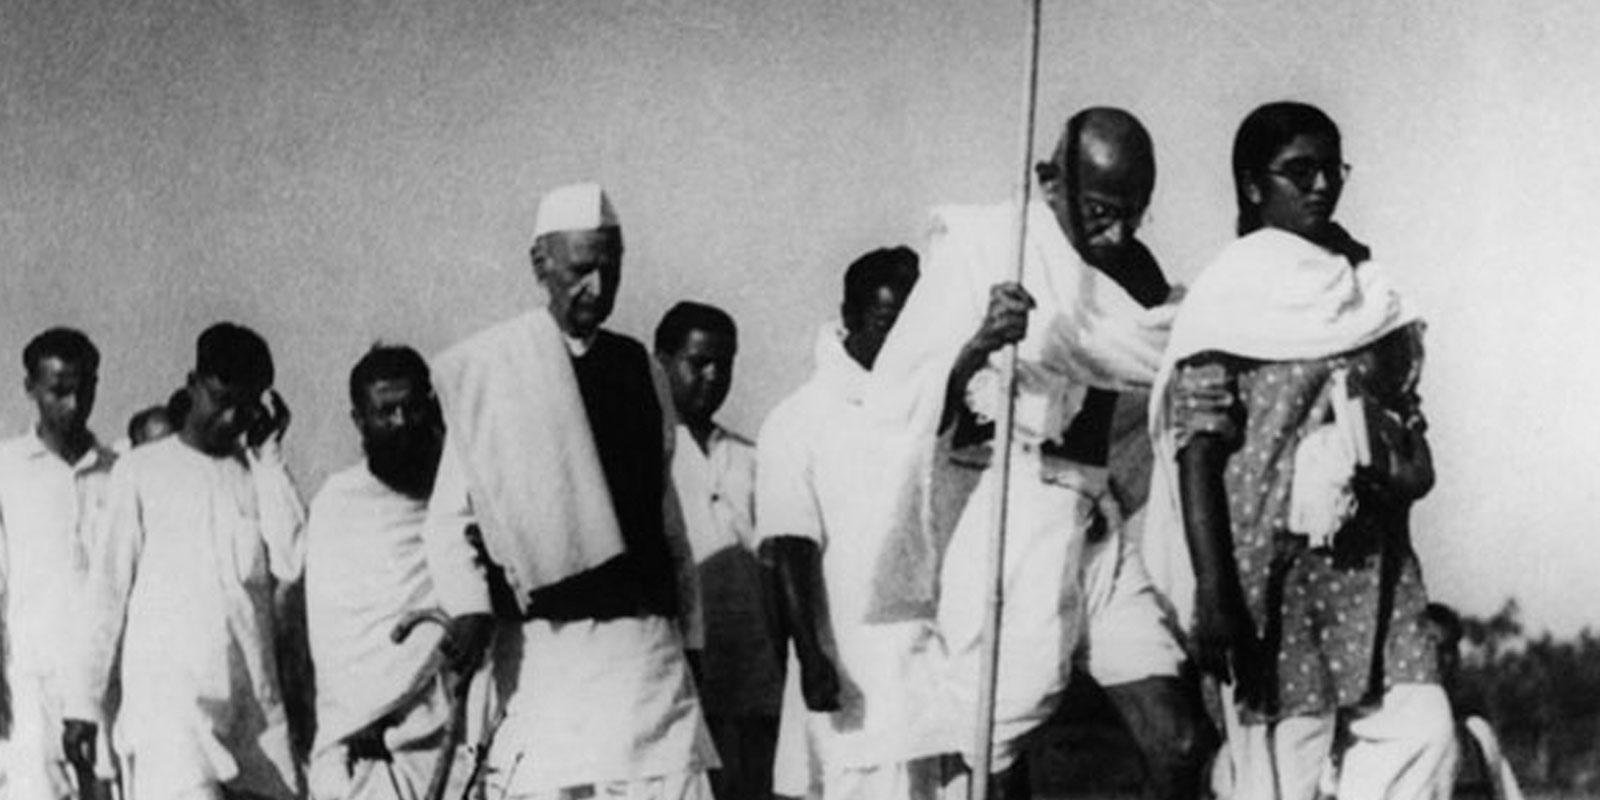 Mahatama Gandhi marching